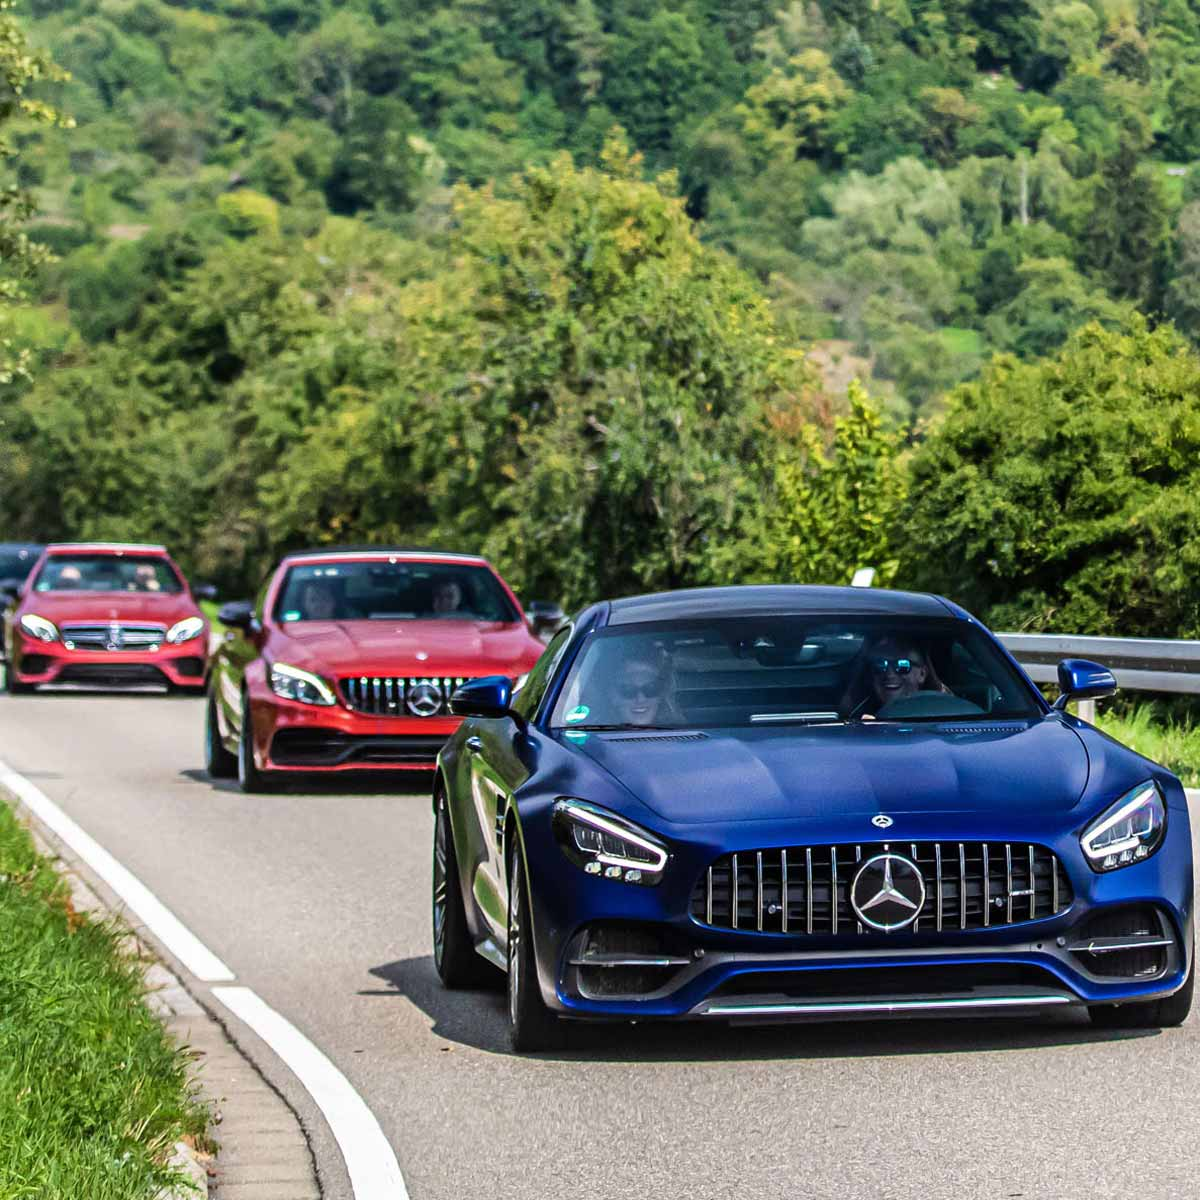 Mercedes-AMG on the road during an Automotive Event